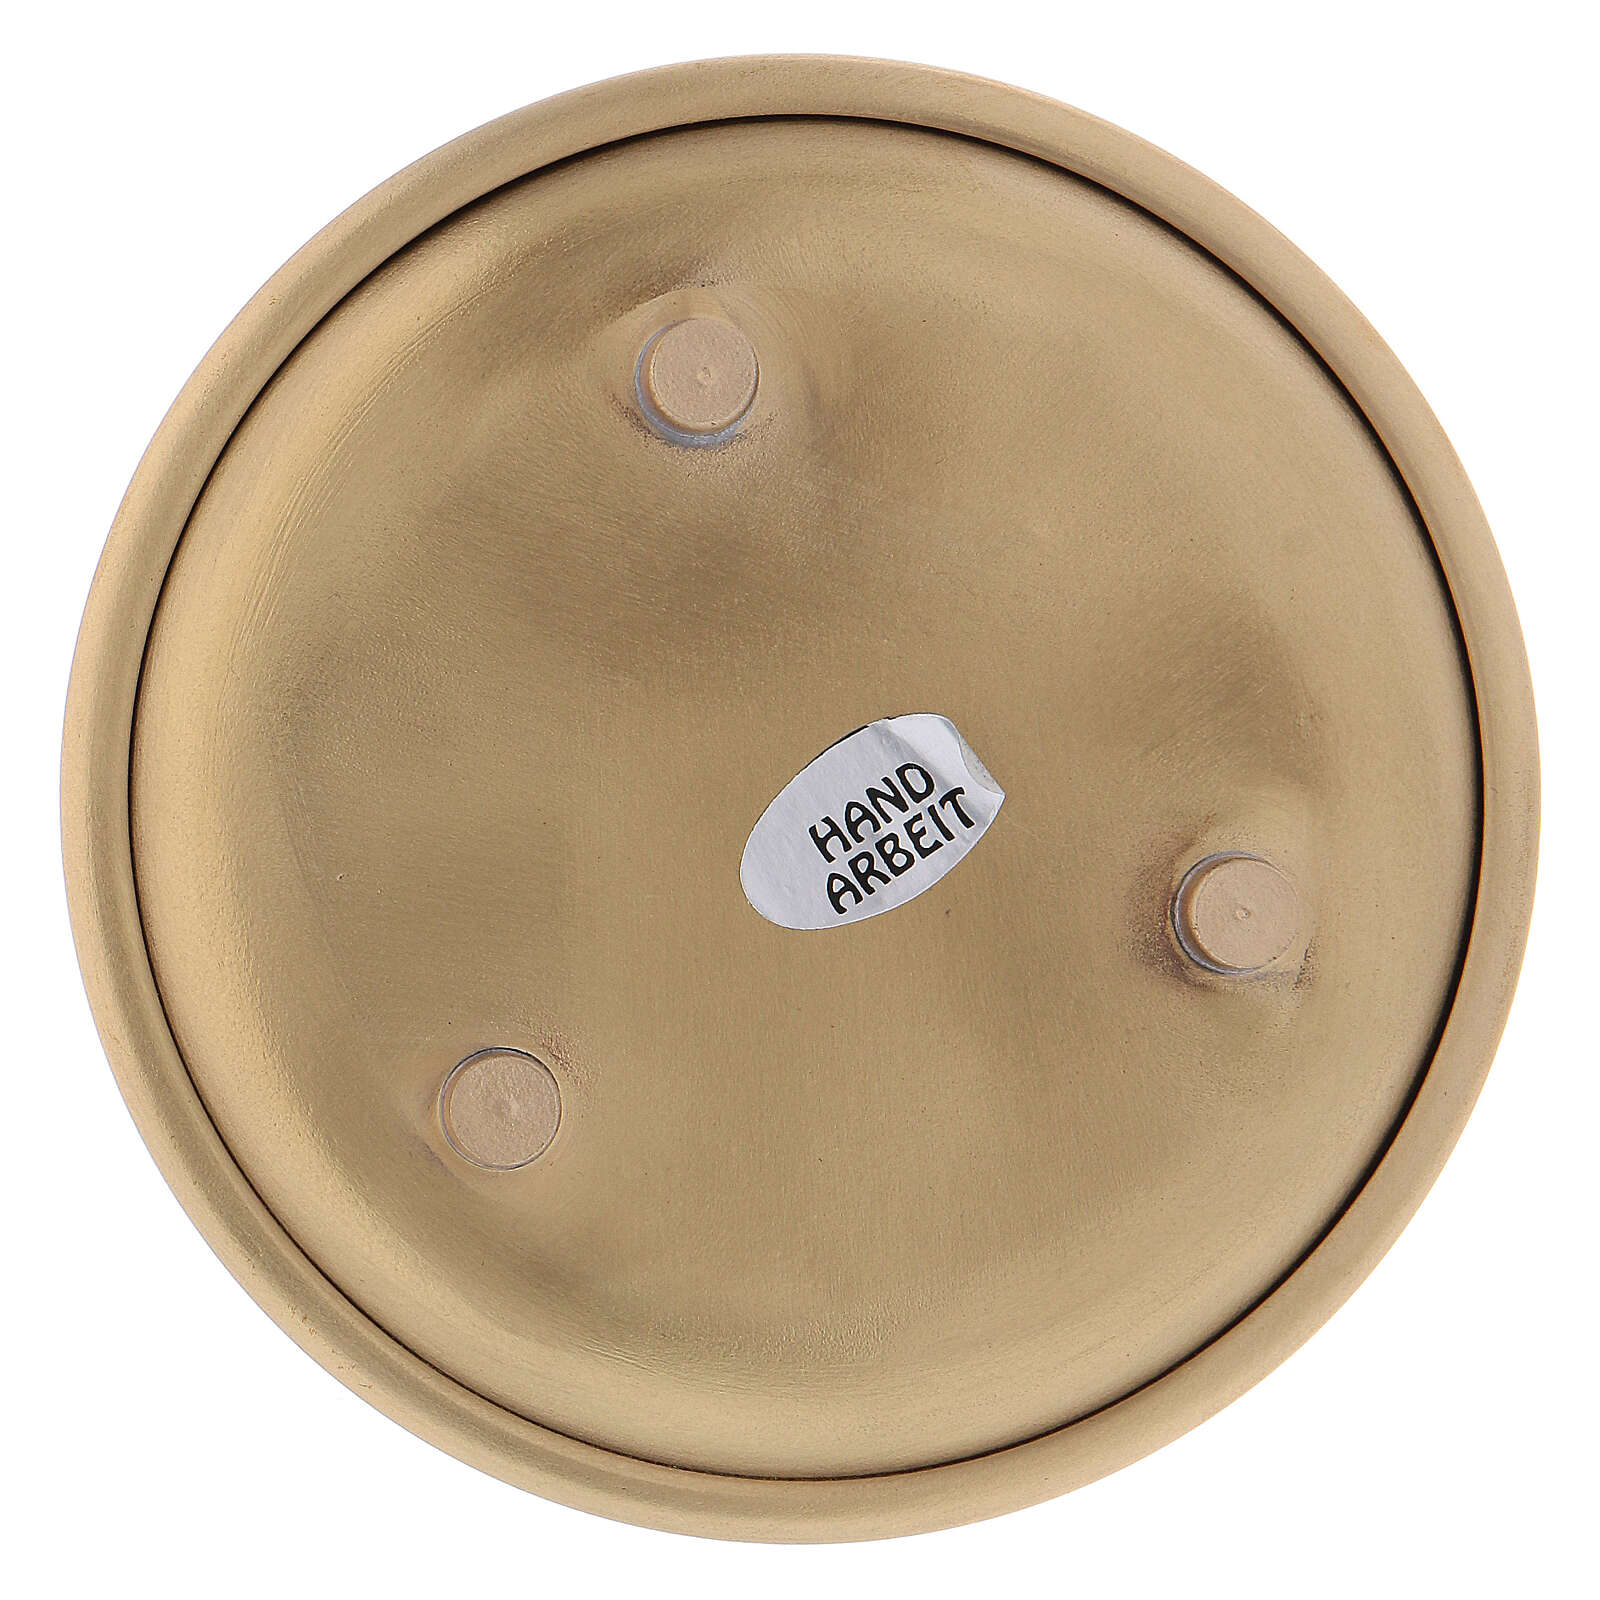 Gold plated brass round plate 4 in 3